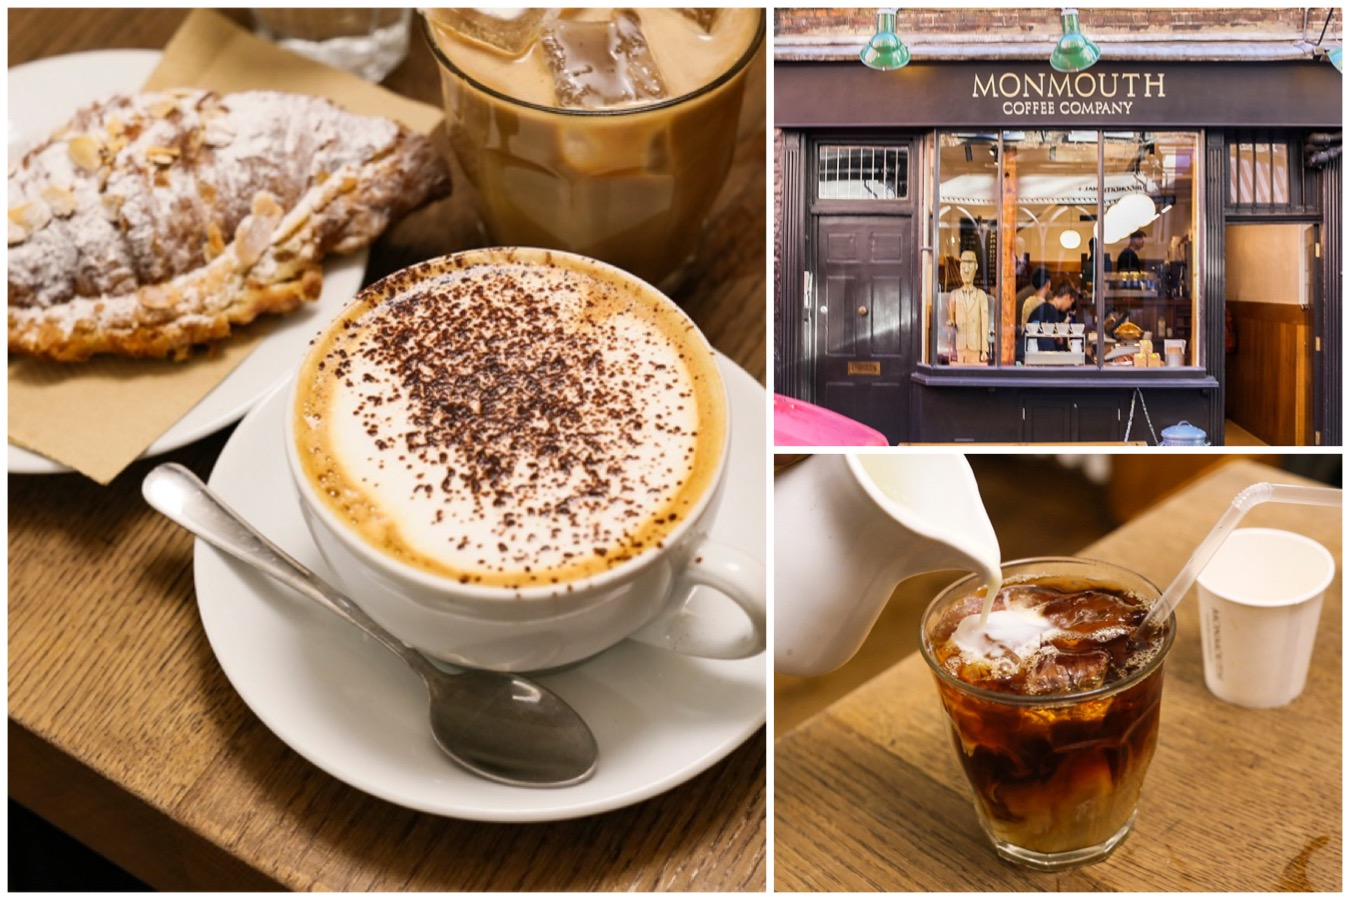 Monmouth Coffee Company - Possibly The Best Coffee Shop You Can Find In London